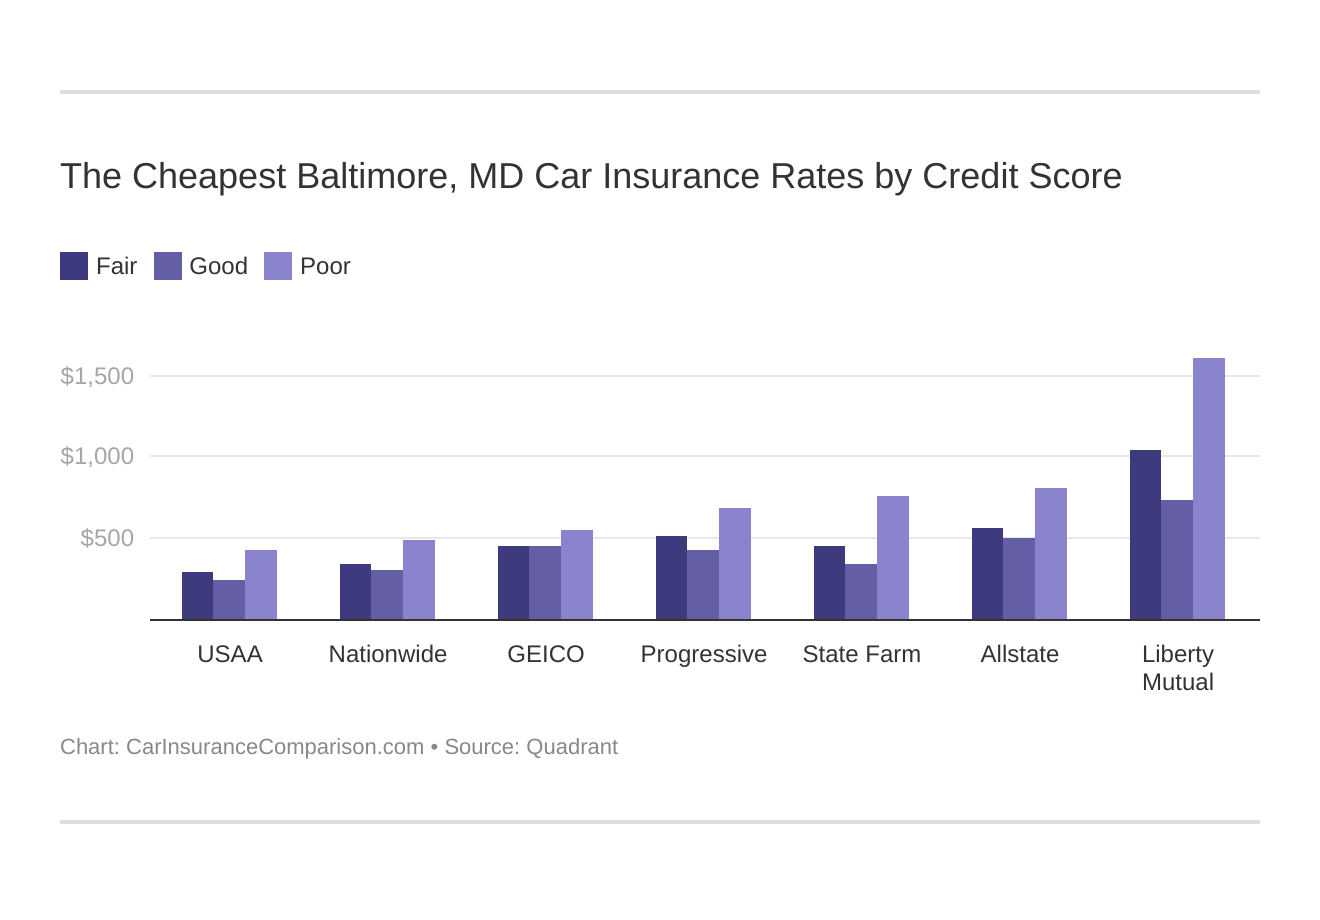 The Cheapest Baltimore, MD Car Insurance Rates by Credit Score